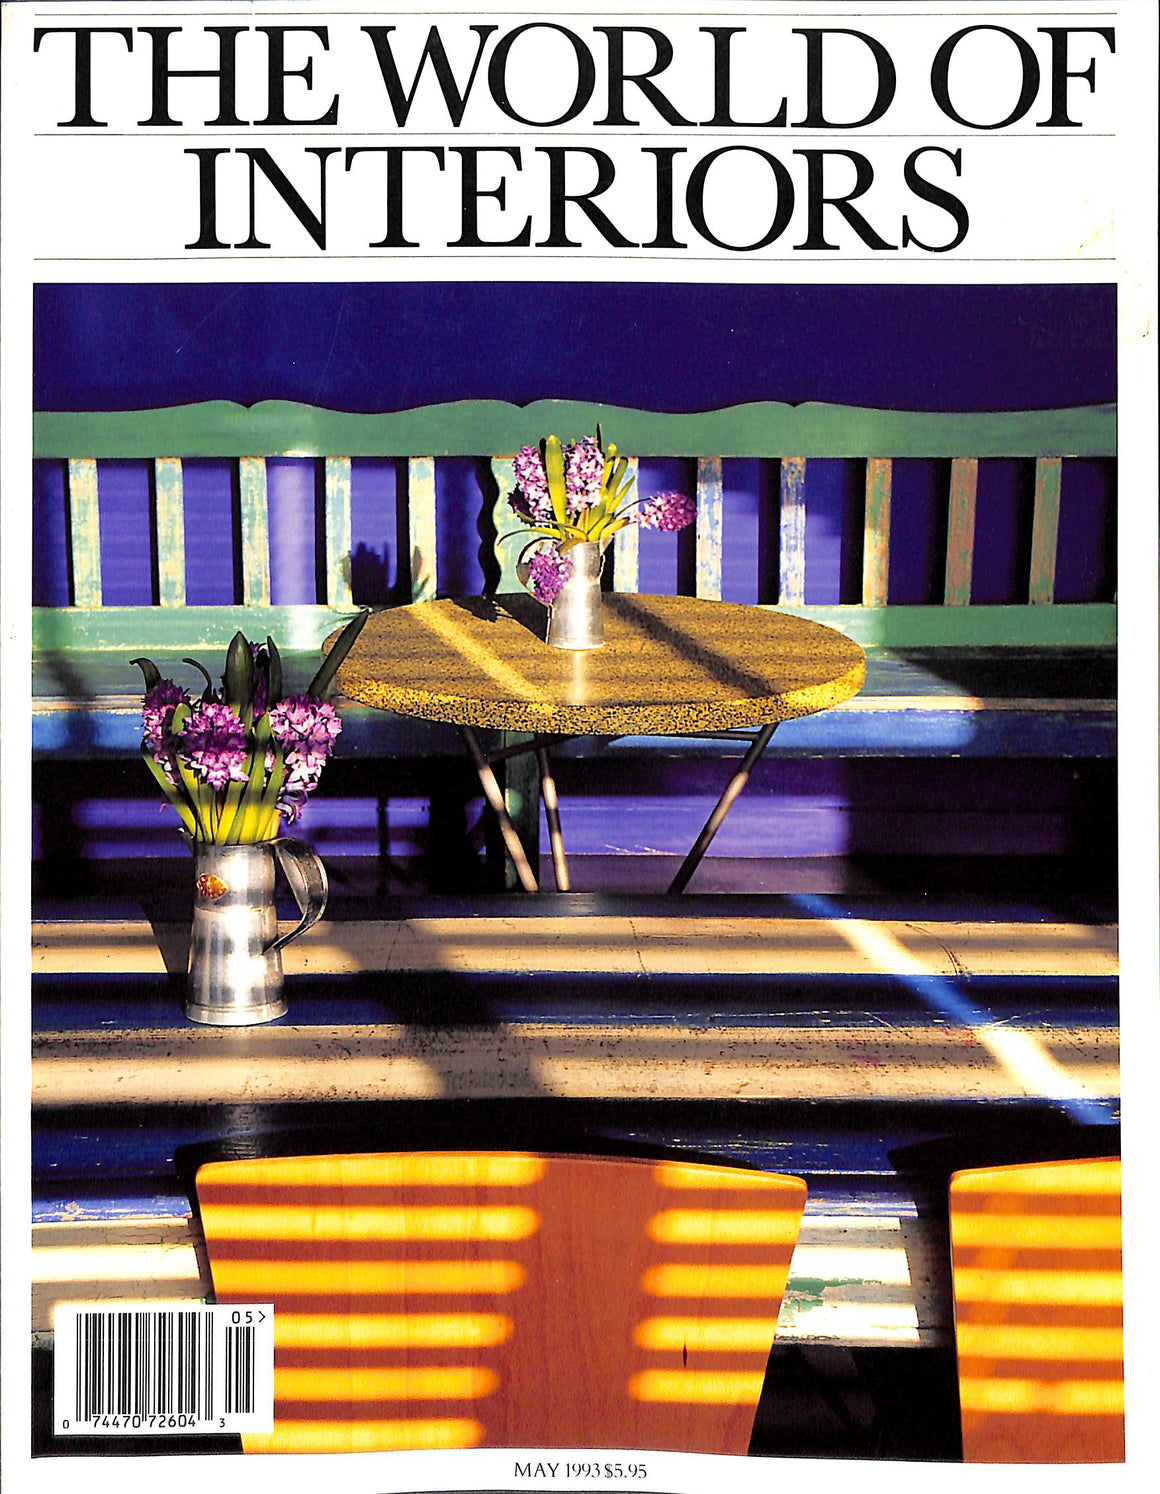 The World of Interiors: May 1993